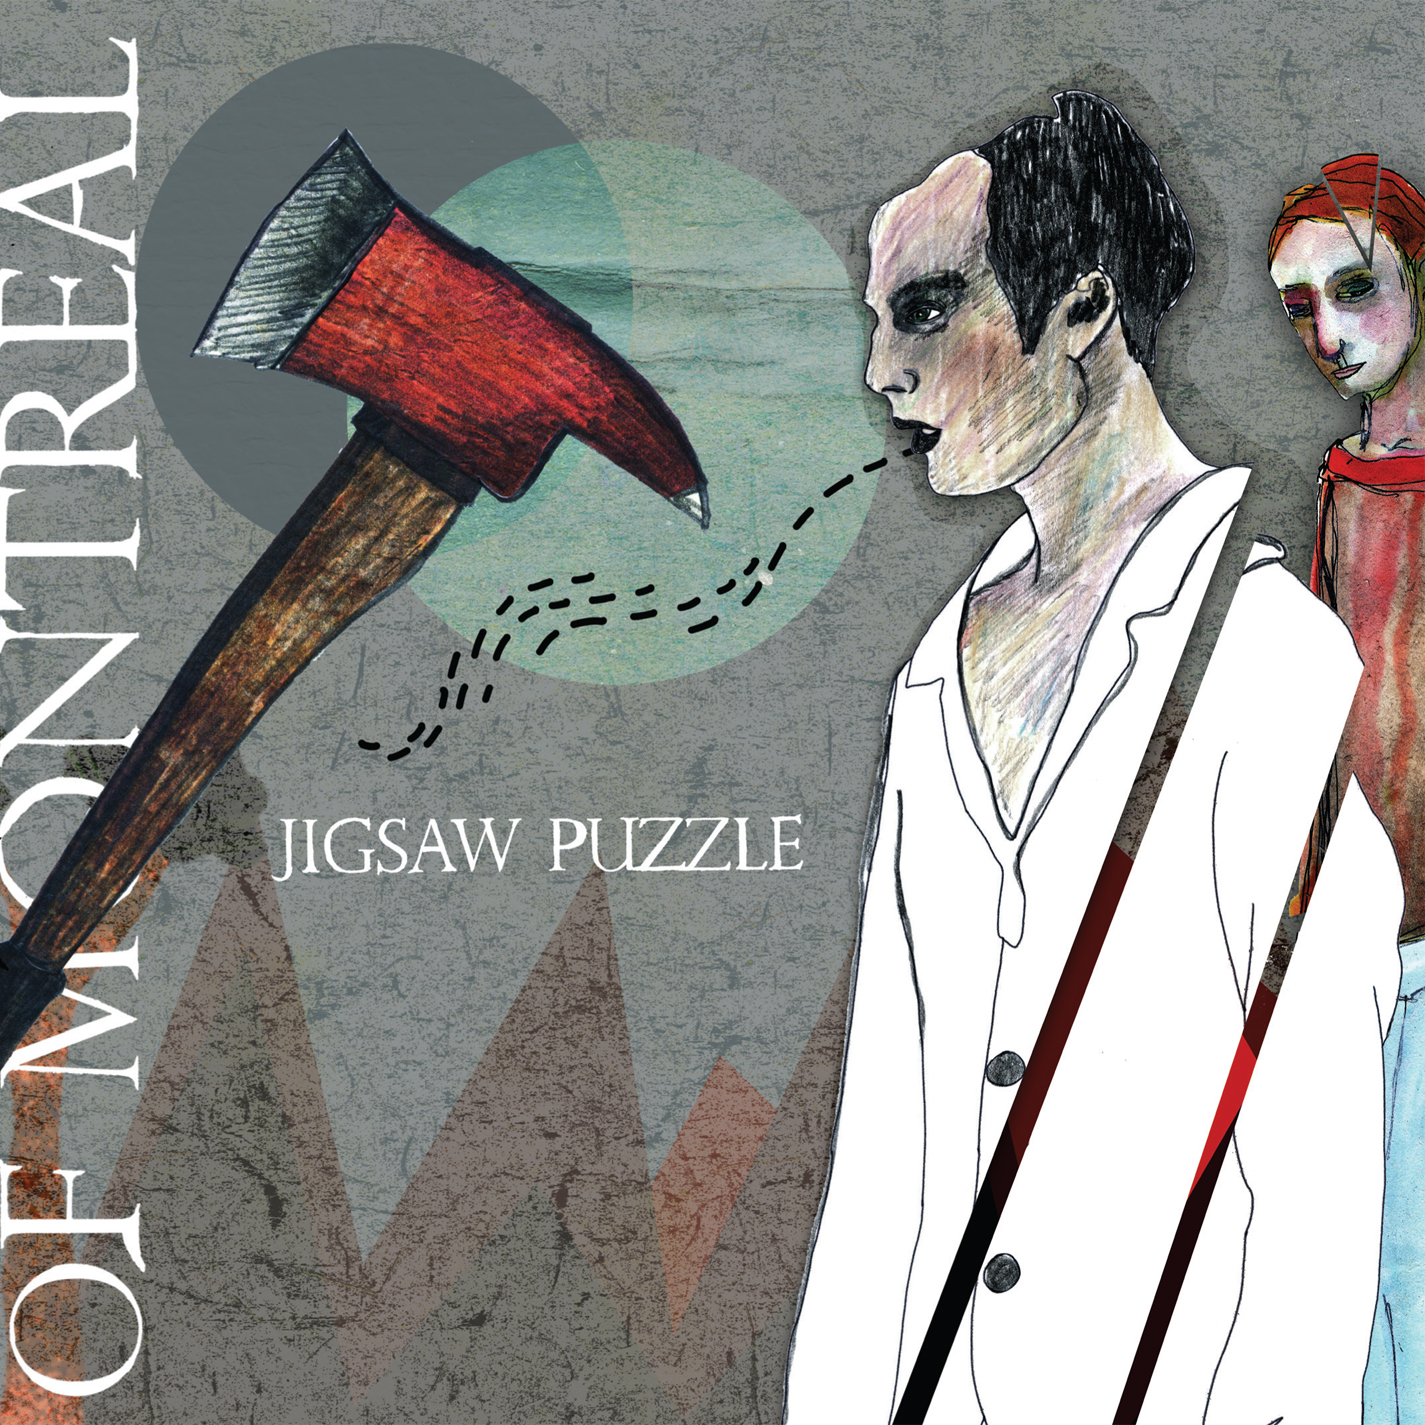 Of Montreal - Jigsaw Puzzle [Vinyl Single]